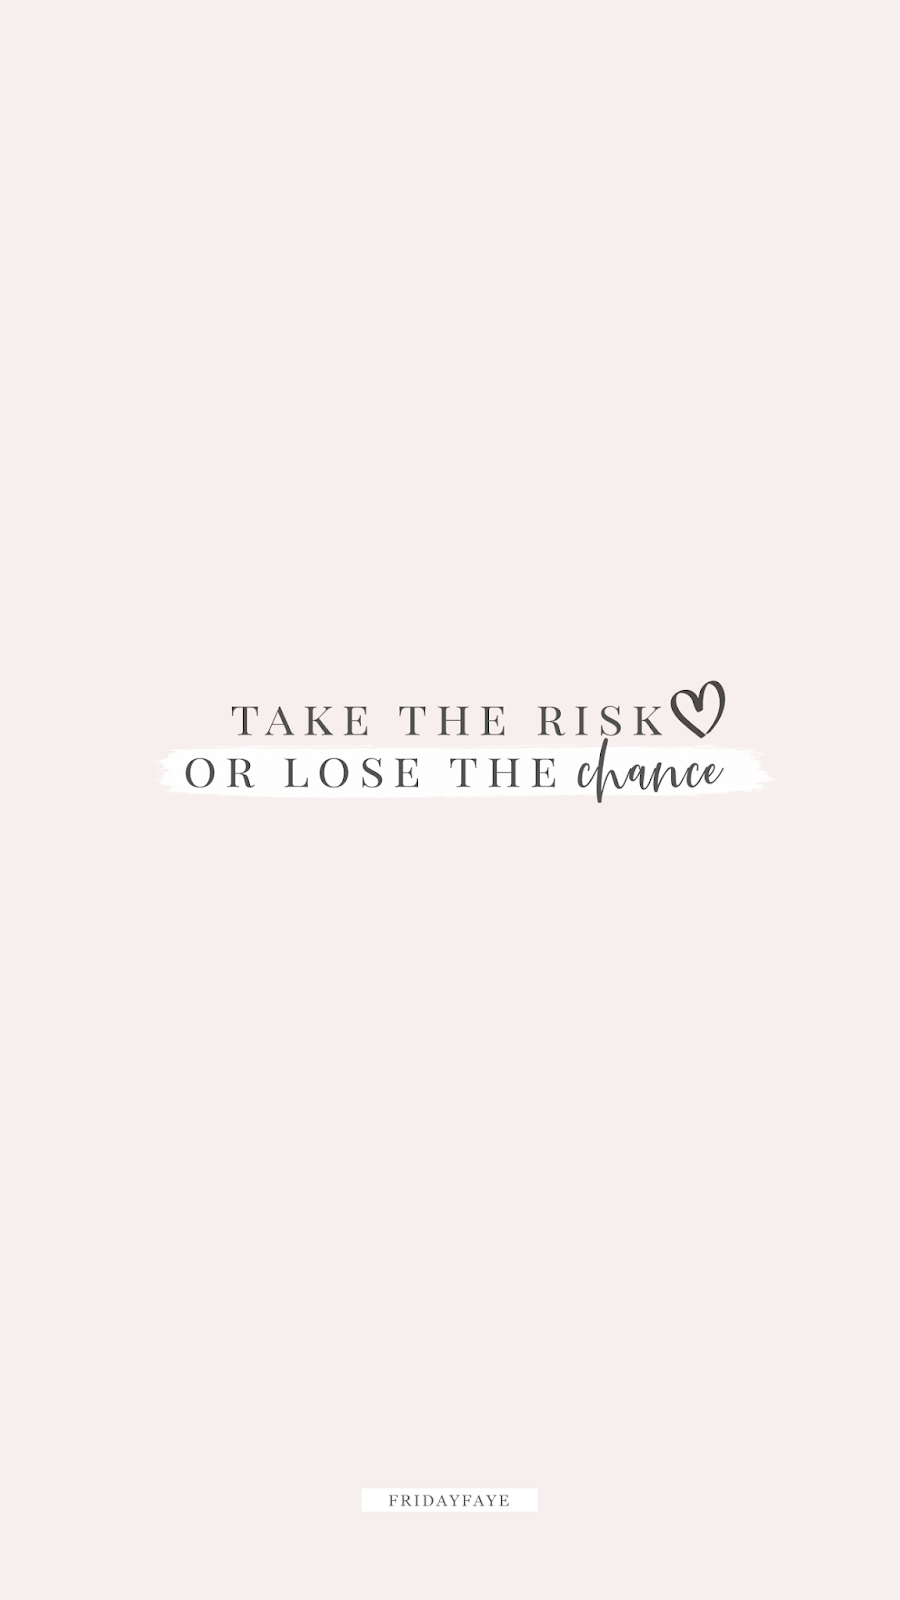 """Text on pink background """"Take the risk or lose the chance"""""""